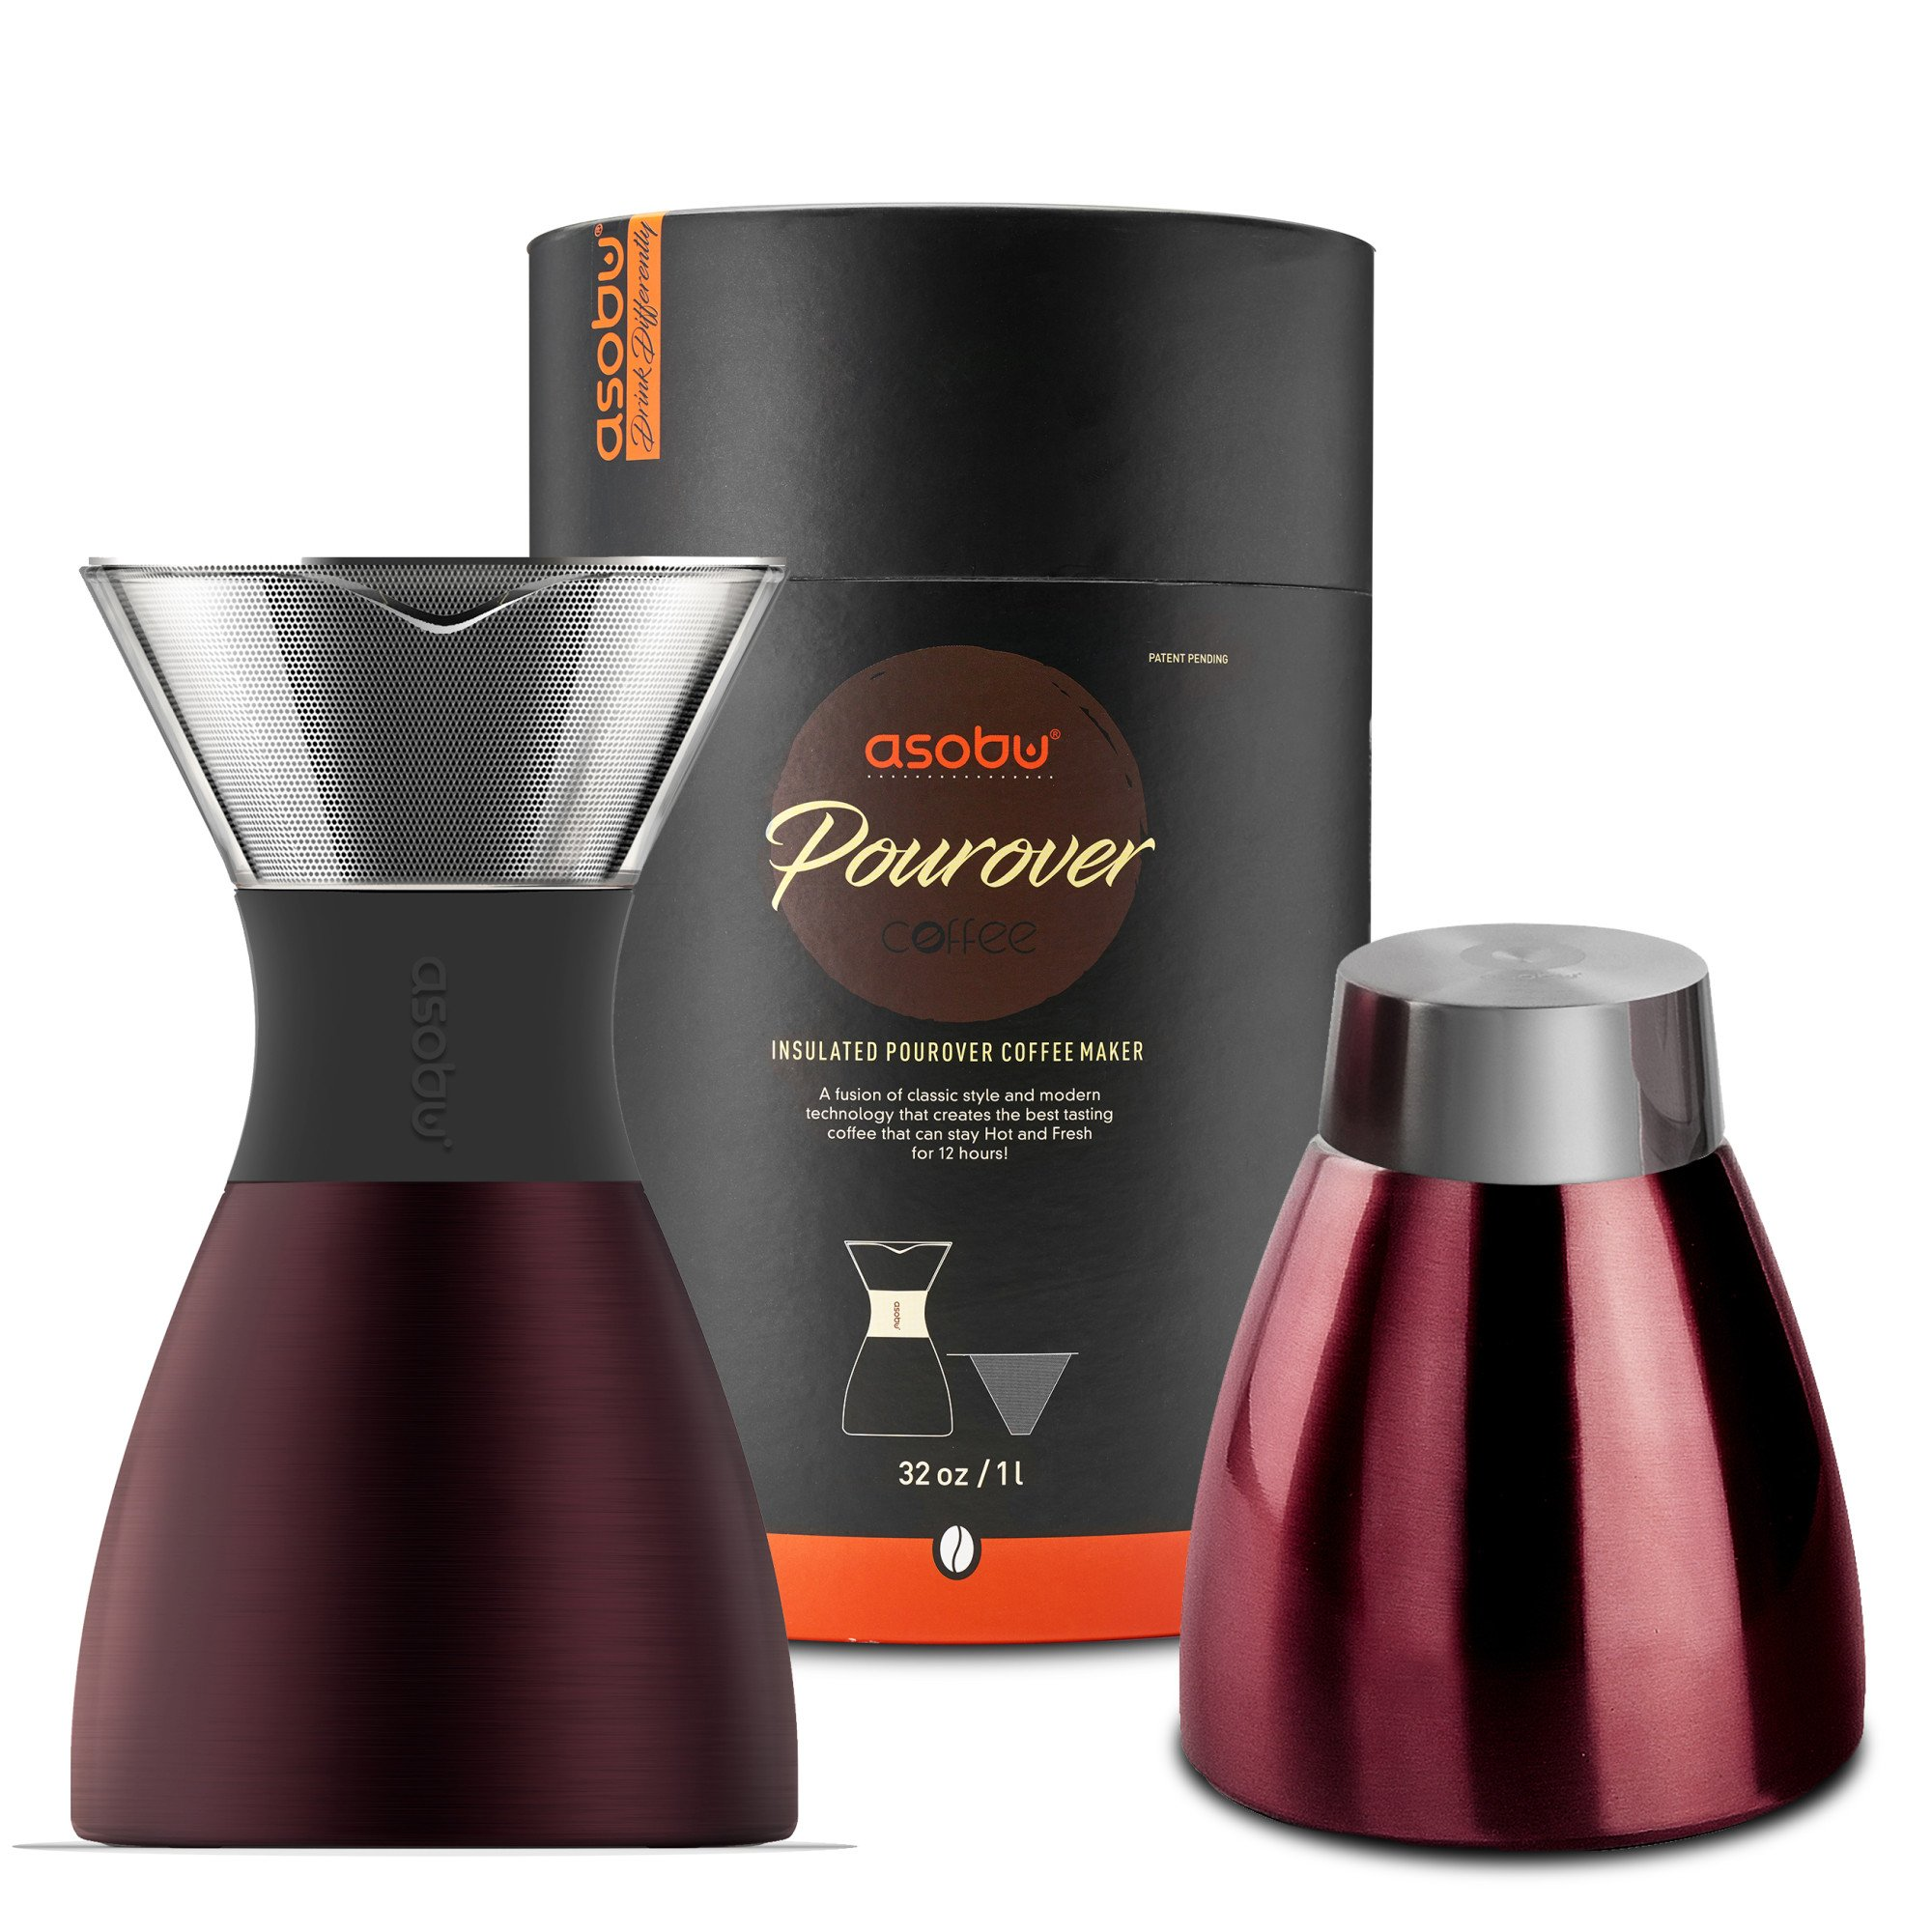 Asobu Red Insulated Pour Over Coffee Maker (32 oz.) Double-Wall Vacuum, Stainless-Steel Filter, Stays Hot Up to 12 Hours